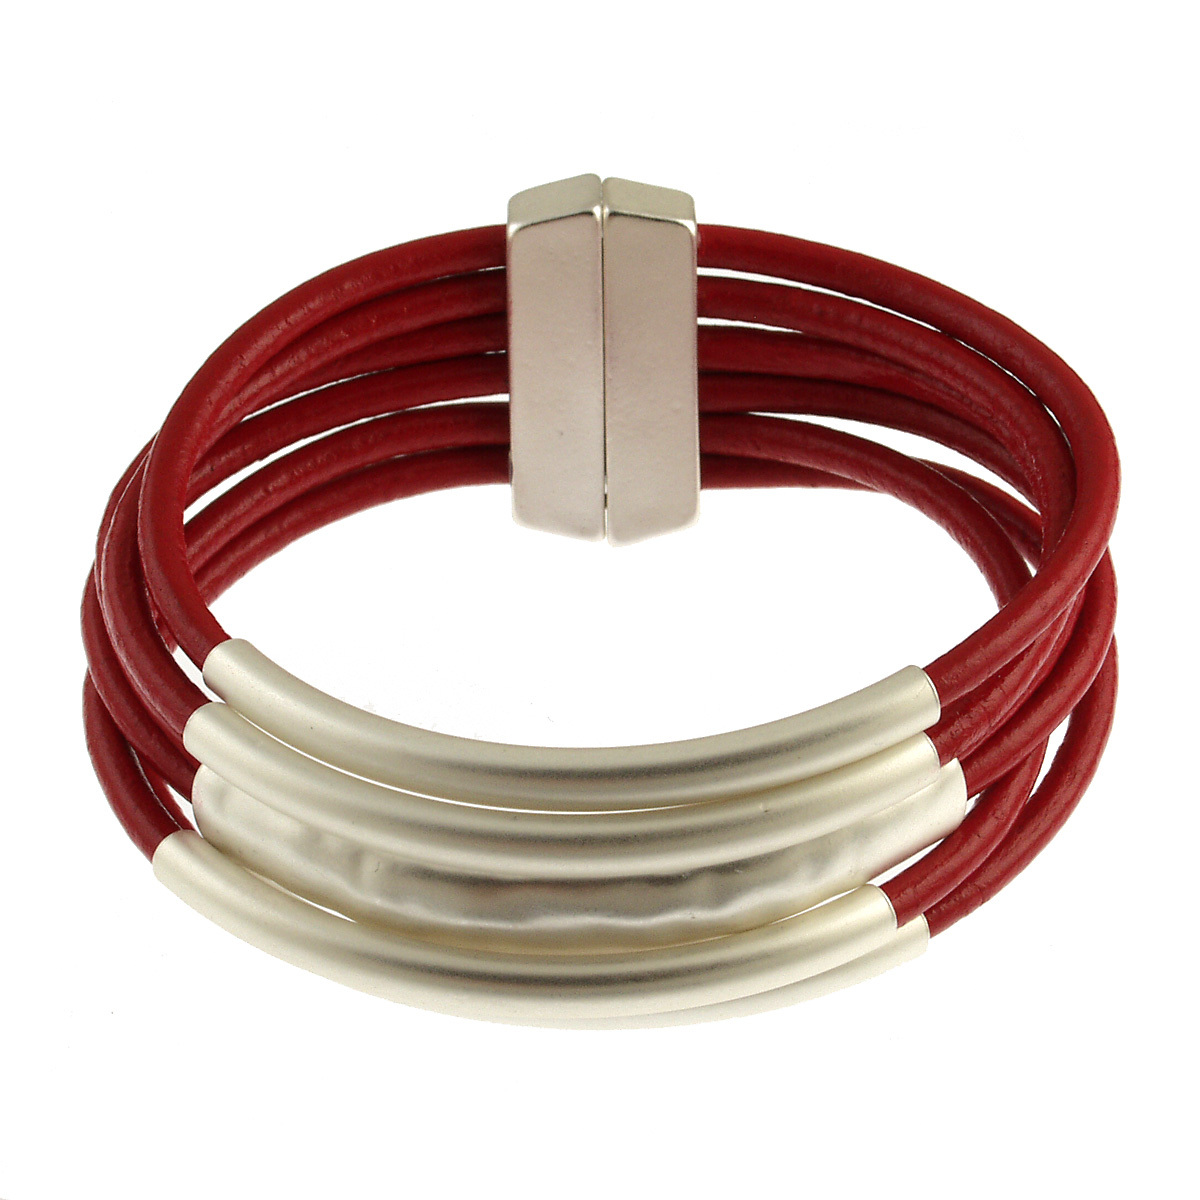 ORIGIN JEWELRY: MAGNETIC LEATHER TUBE BRACELET,6105-9